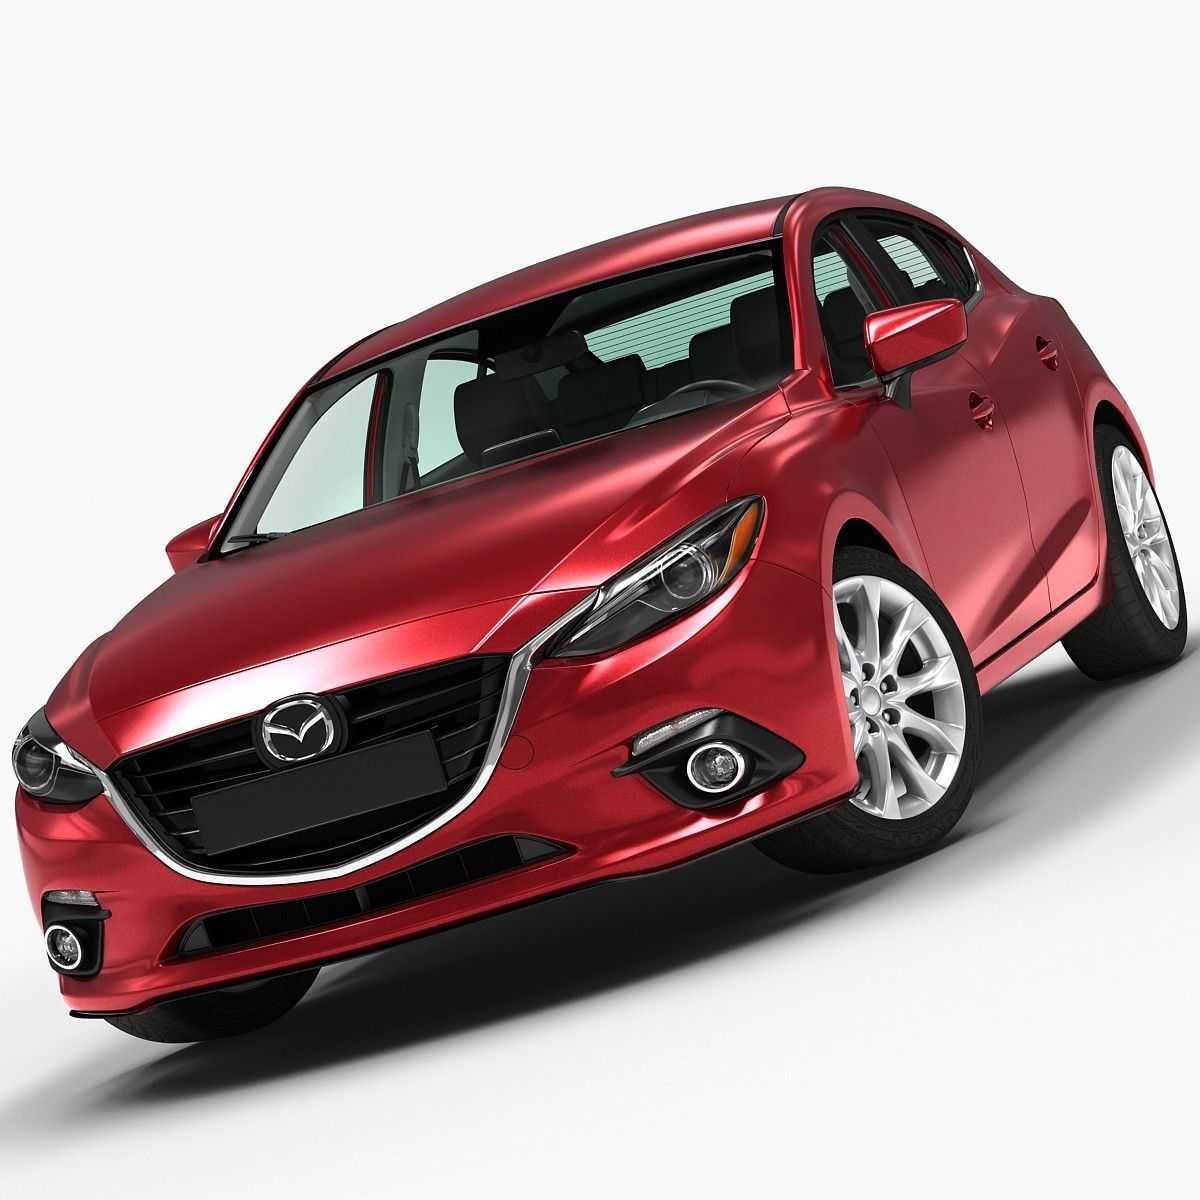 c4d 2014 mazda 3 hatchback Supercars Pinterest